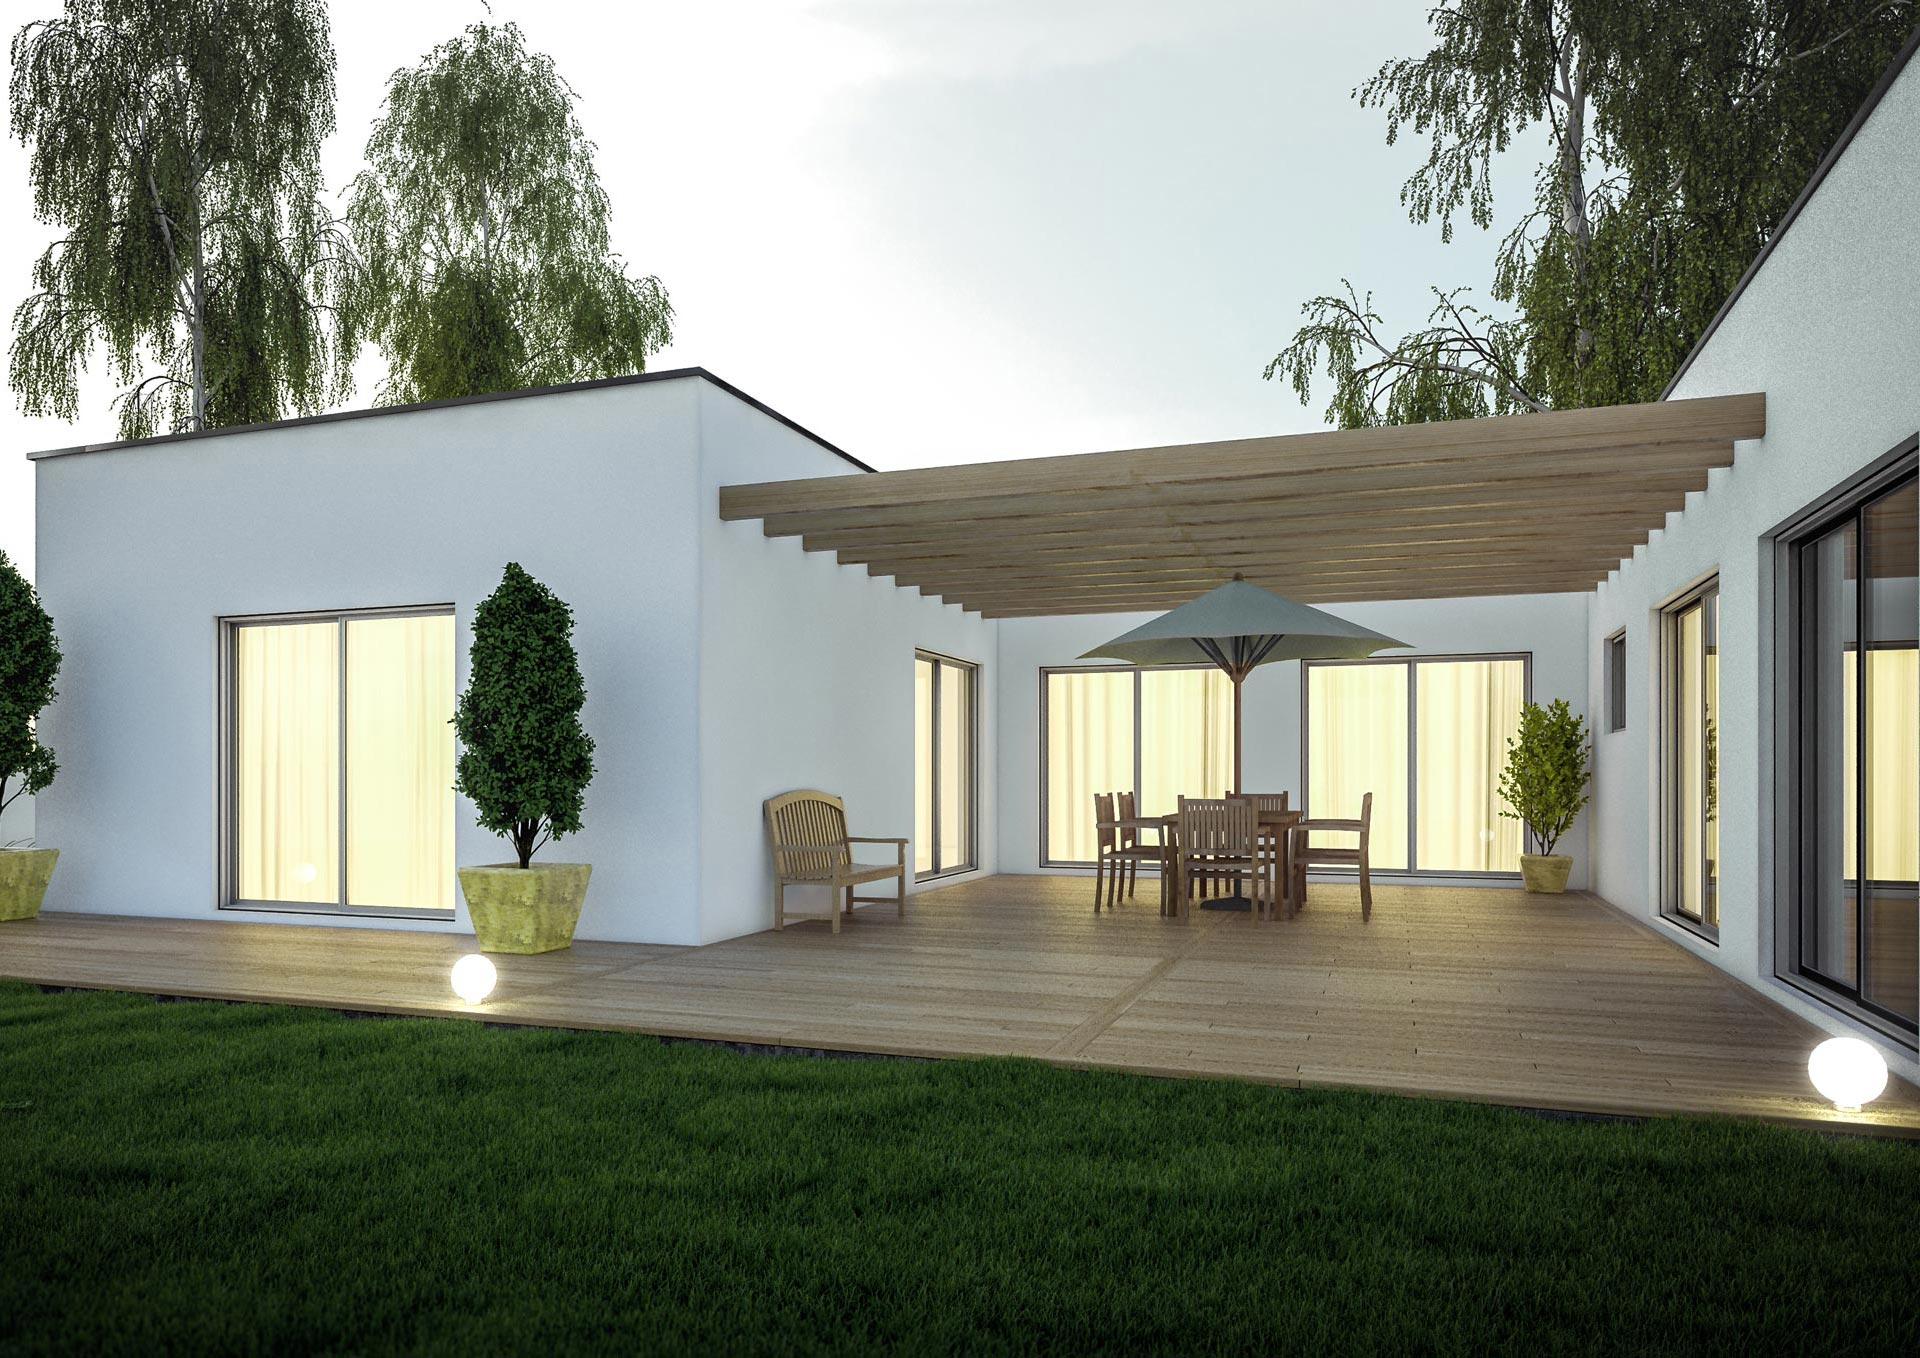 Superbe Extension Maison Design Pergola Terrasse Grandes Images